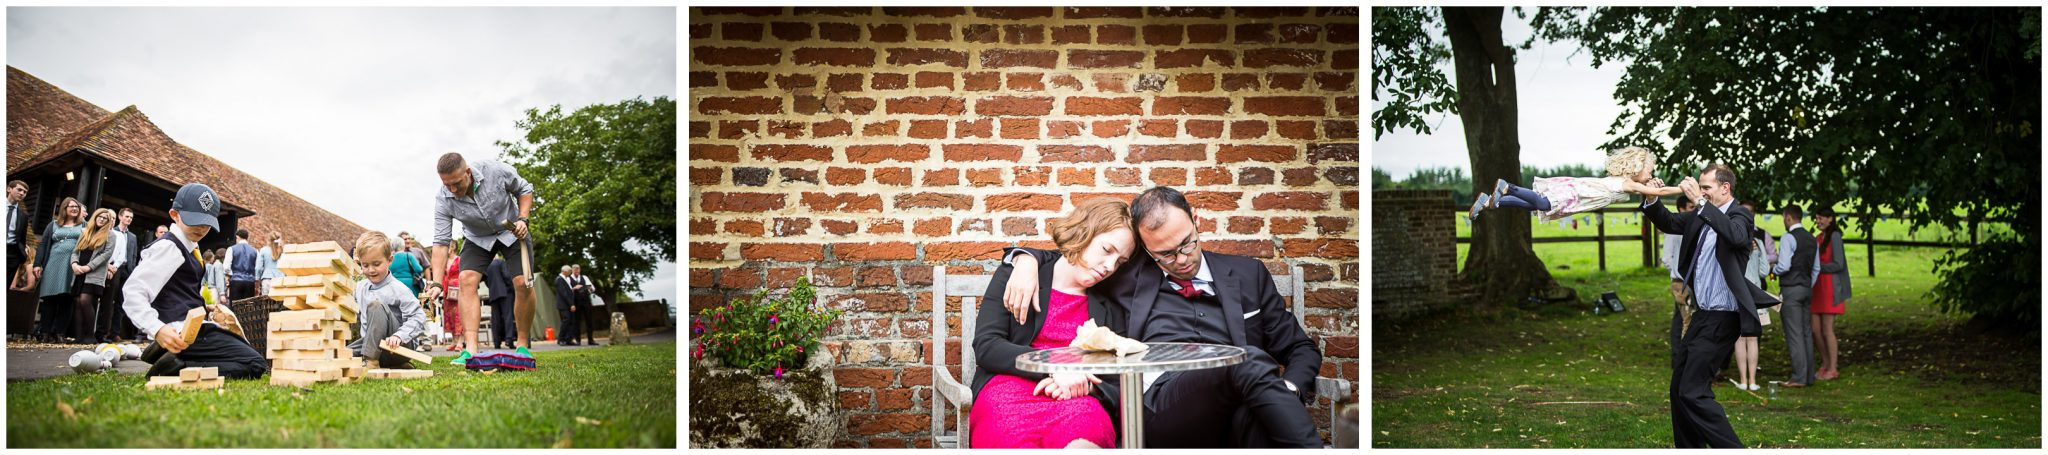 Winchester Great Hall wedding photography guests and garden games at barn reception